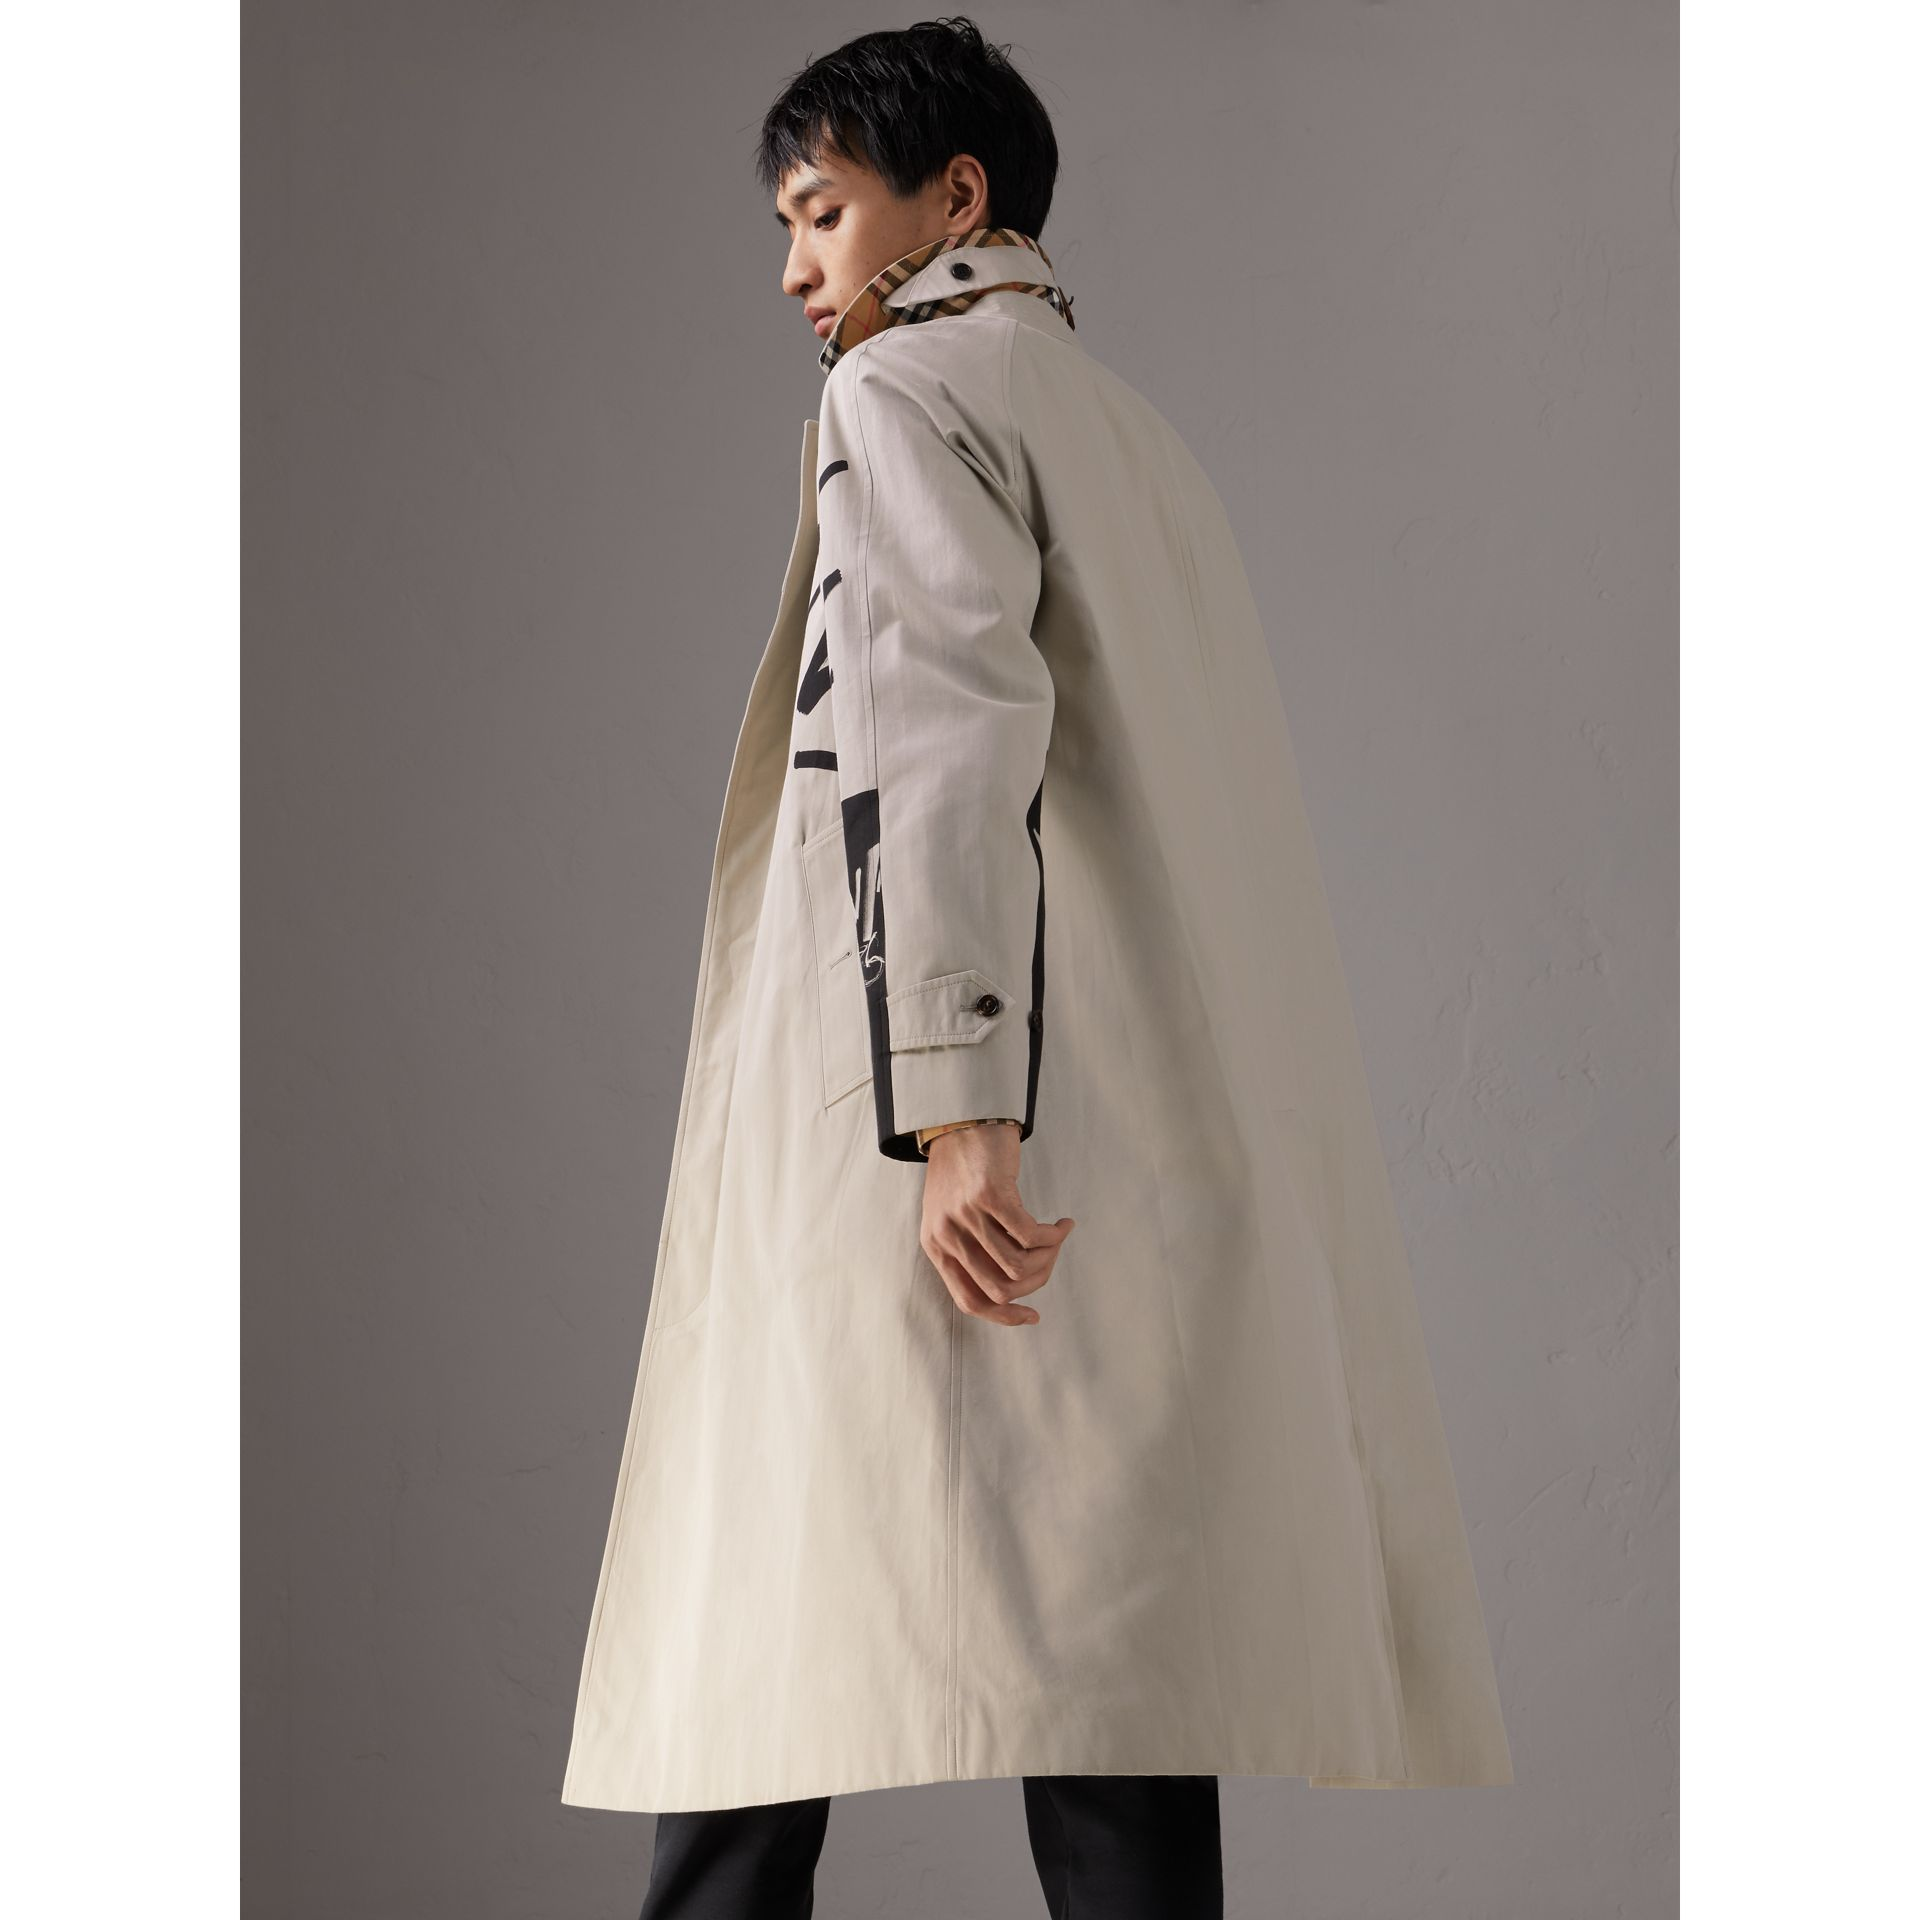 Burberry x Kris Wu Gabardine Car Coat in Stone - Men | Burberry - gallery image 2